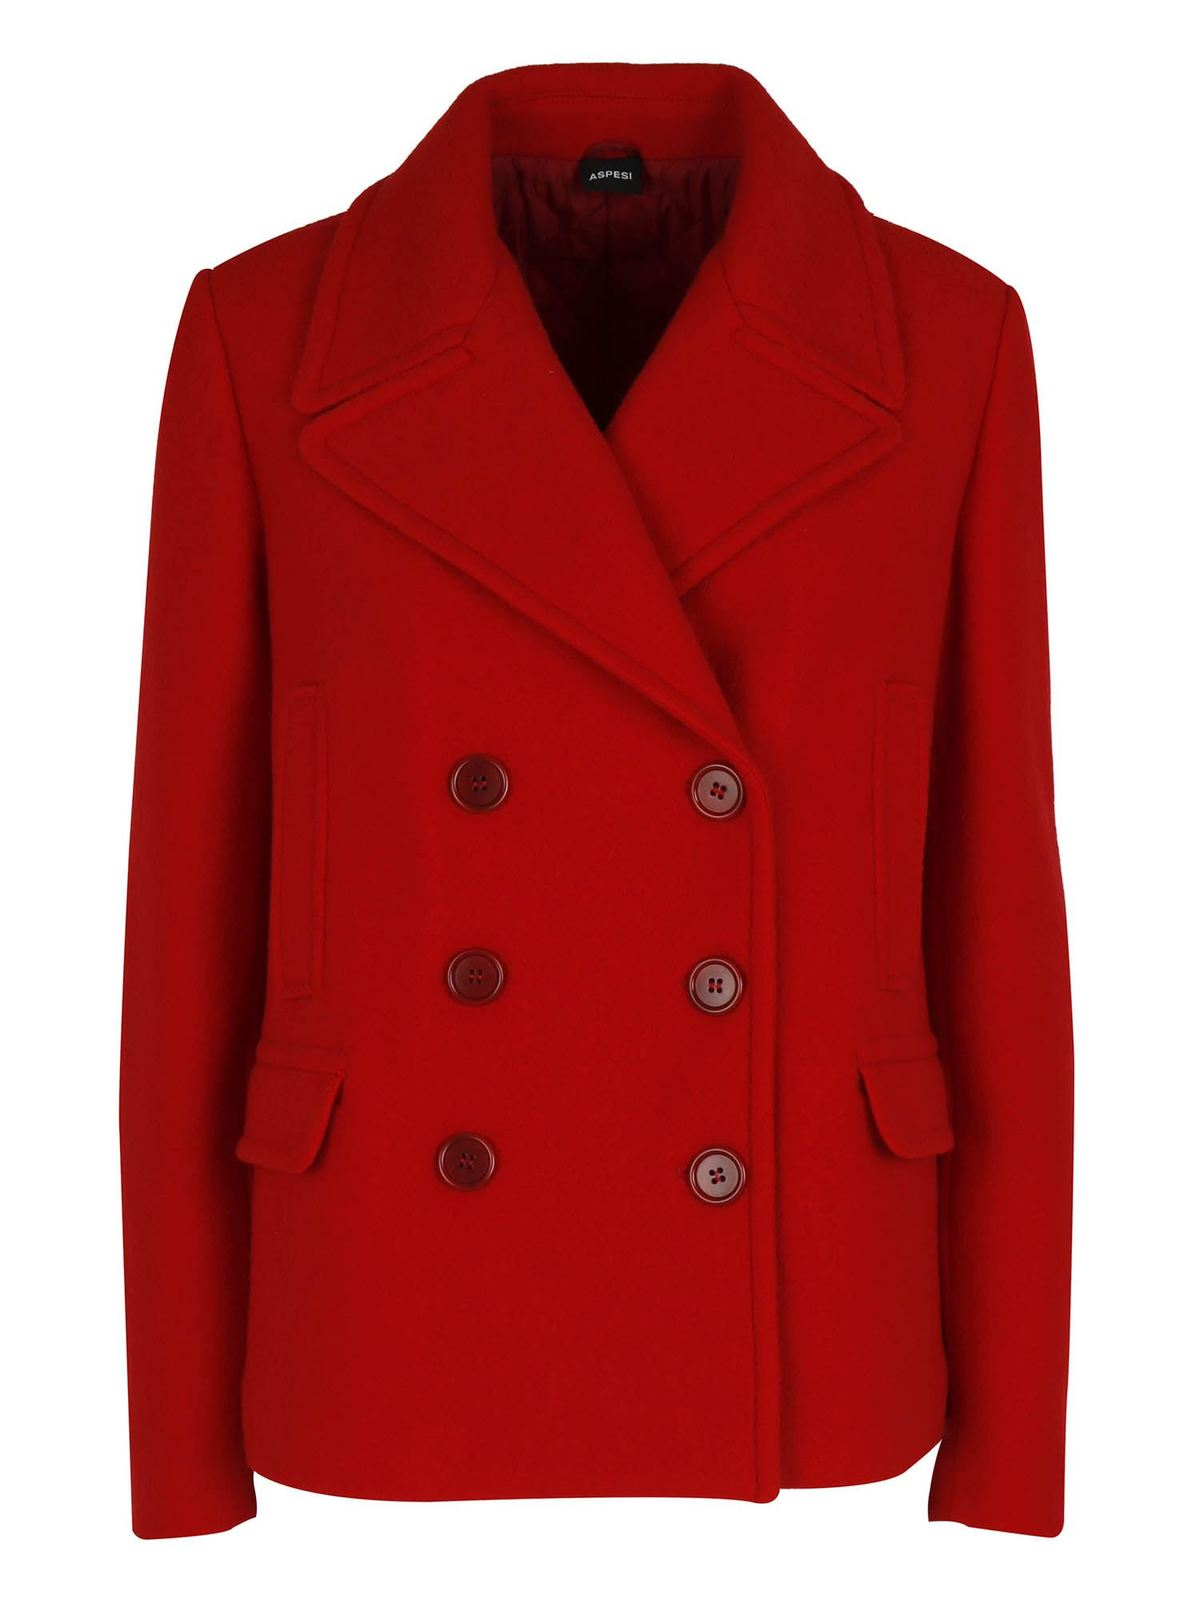 Aspesi WOOL DOUBLE-BREASTED JACKET IN RED